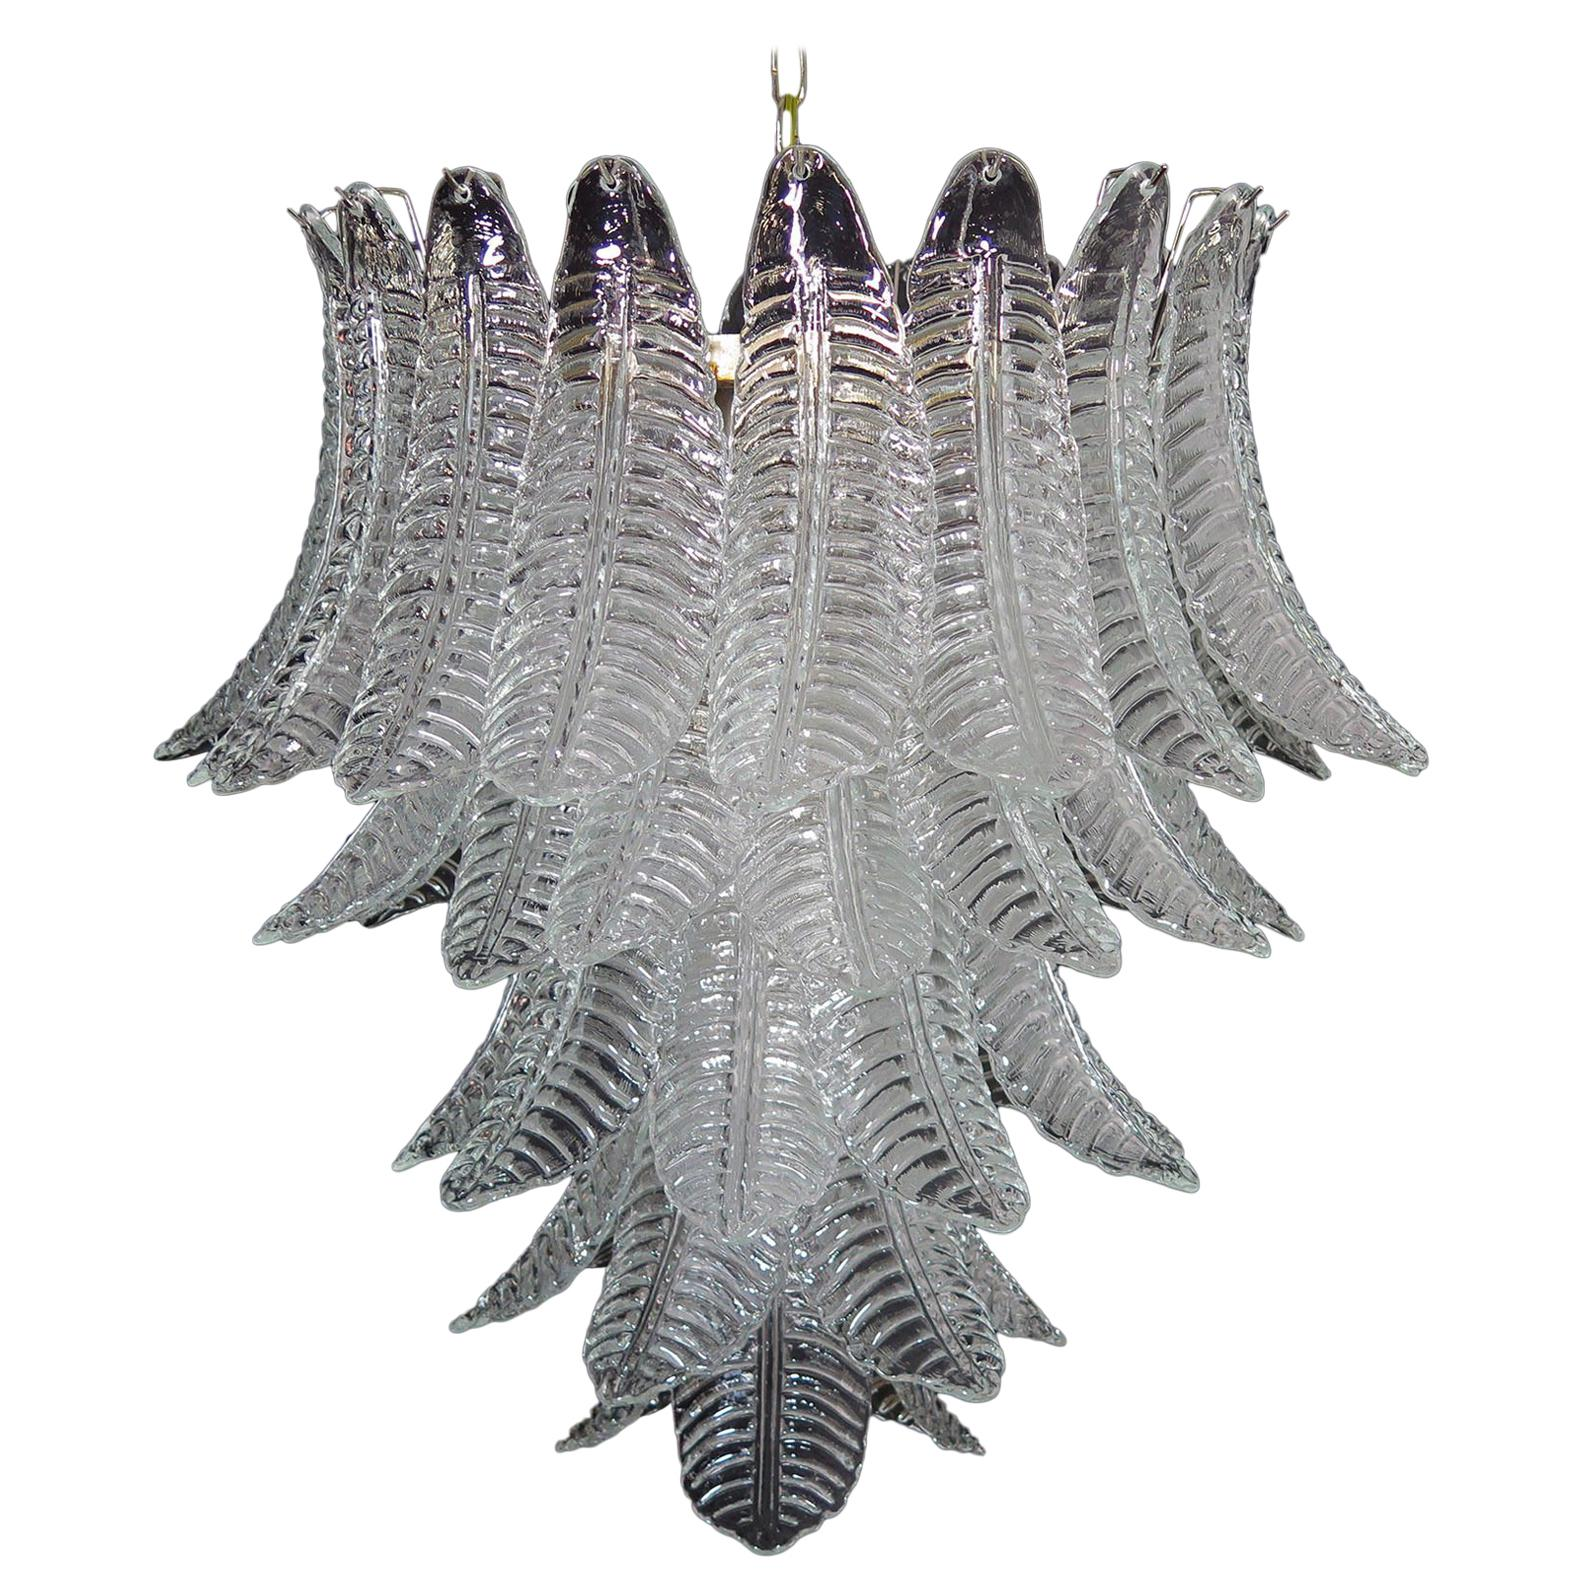 Huge Italian Murano Six-Tier Felci Glass Chandelier